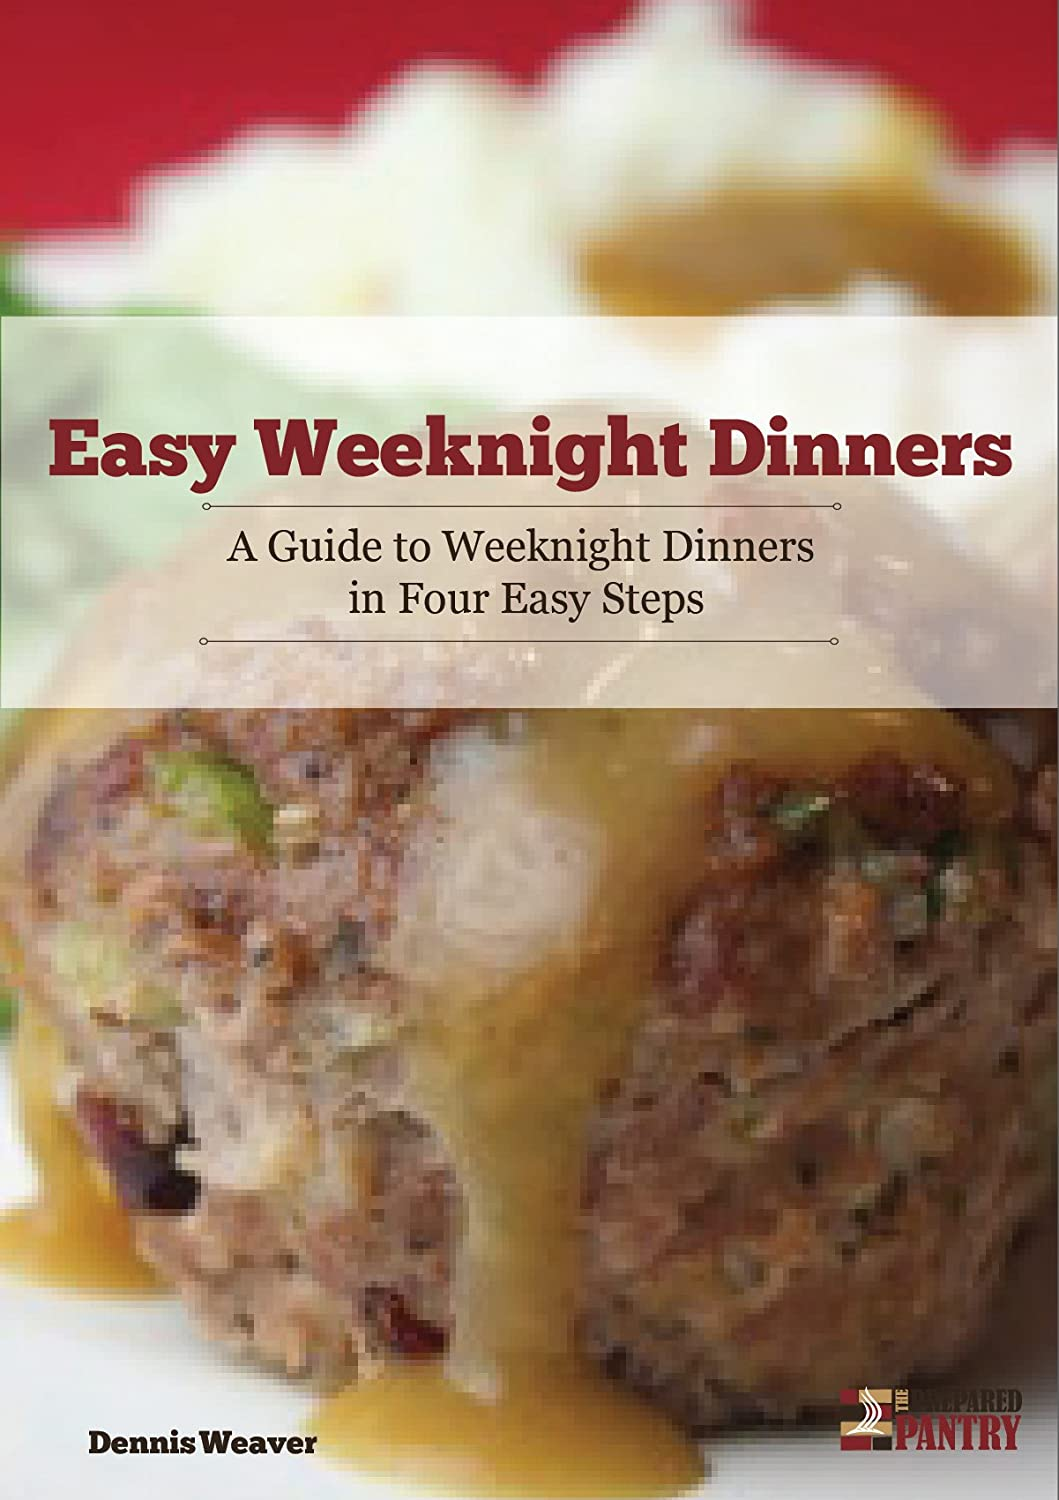 http://www.amazon.com/Easy-Weeknight-Dinners-Guide-Steps-ebook/dp/B00ICXMUPK/ref=as_sl_pc_ss_til?tag=lettfromahome-20&linkCode=w01&linkId=&creativeASIN=B00ICXMUPK